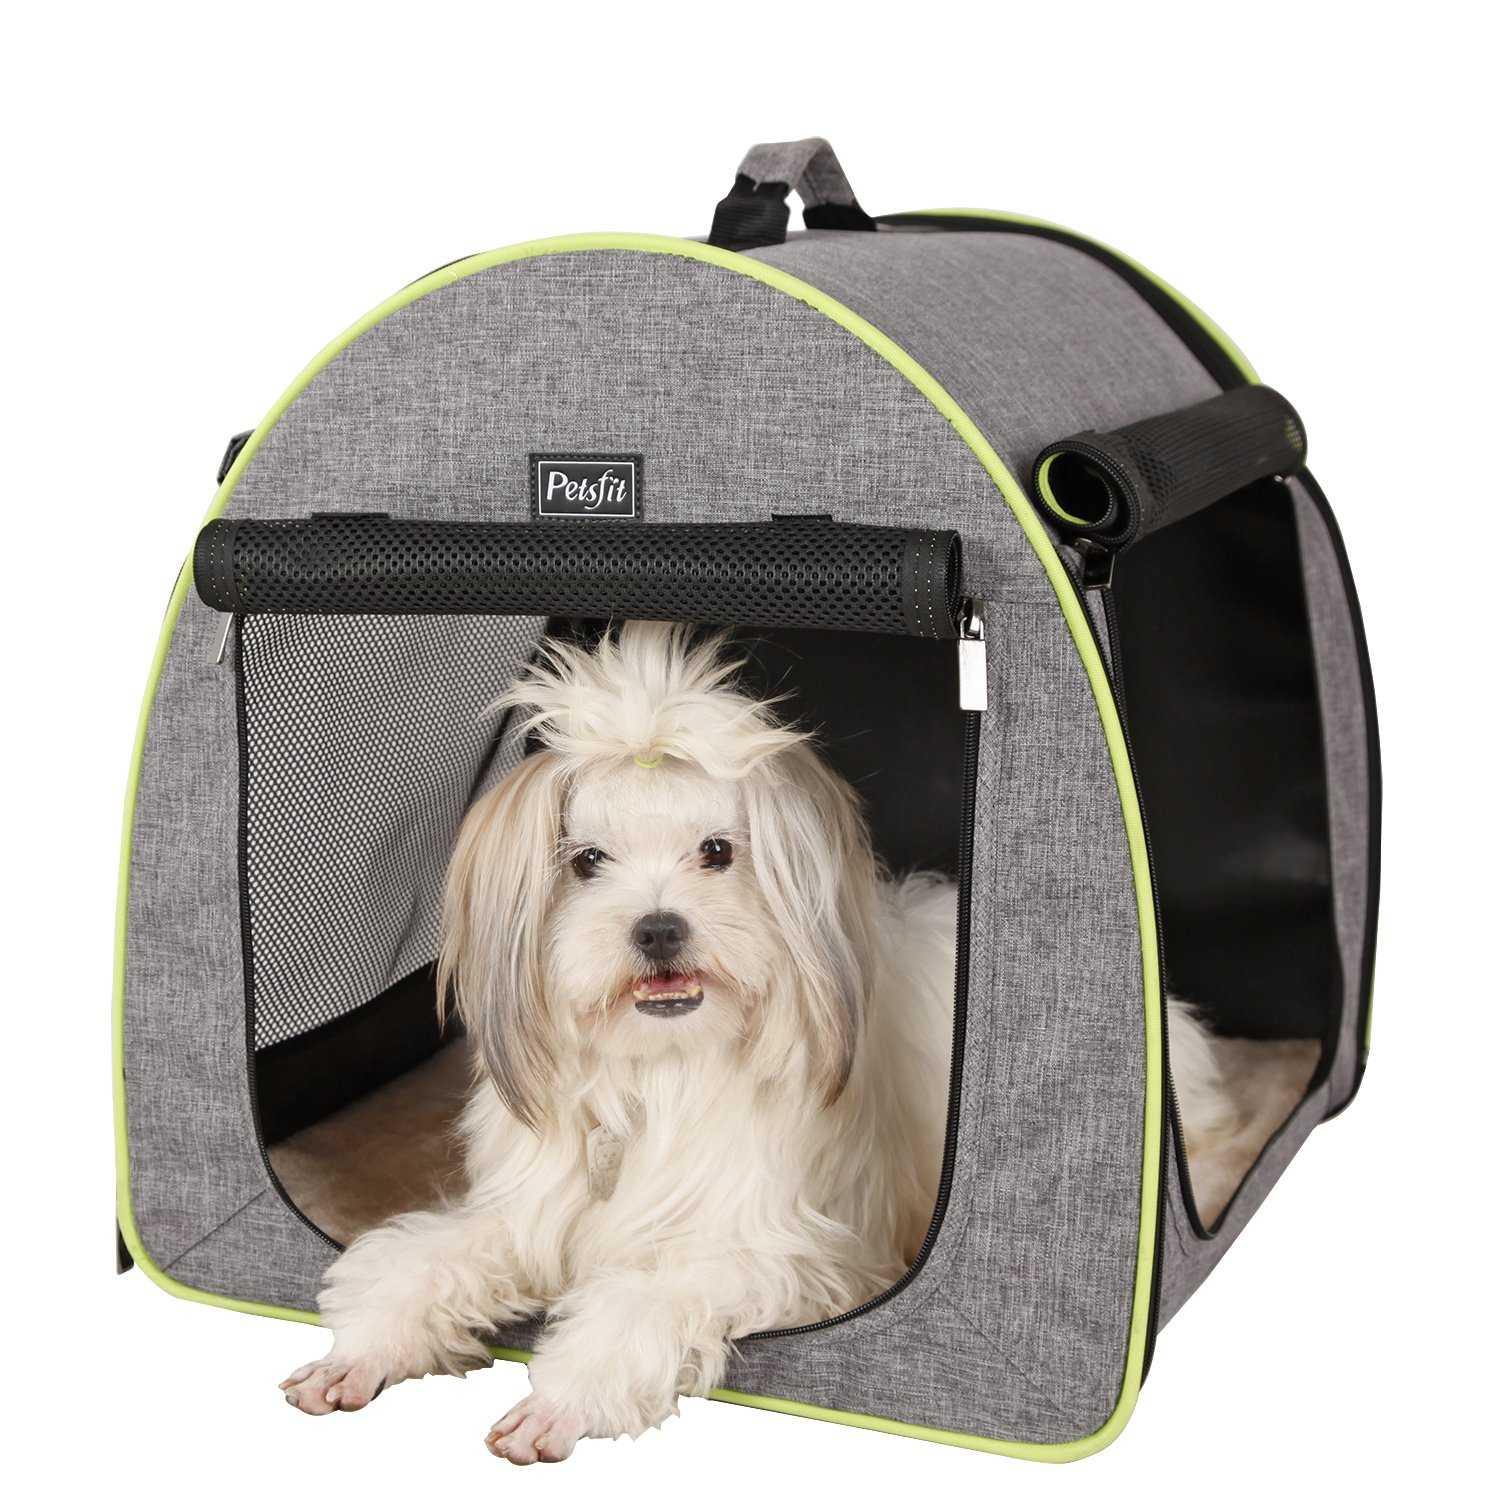 Petsfit Soft Portable Dog Crate Cat Crate Foldable Pet Kennel Indoor Outdoor Pet Home